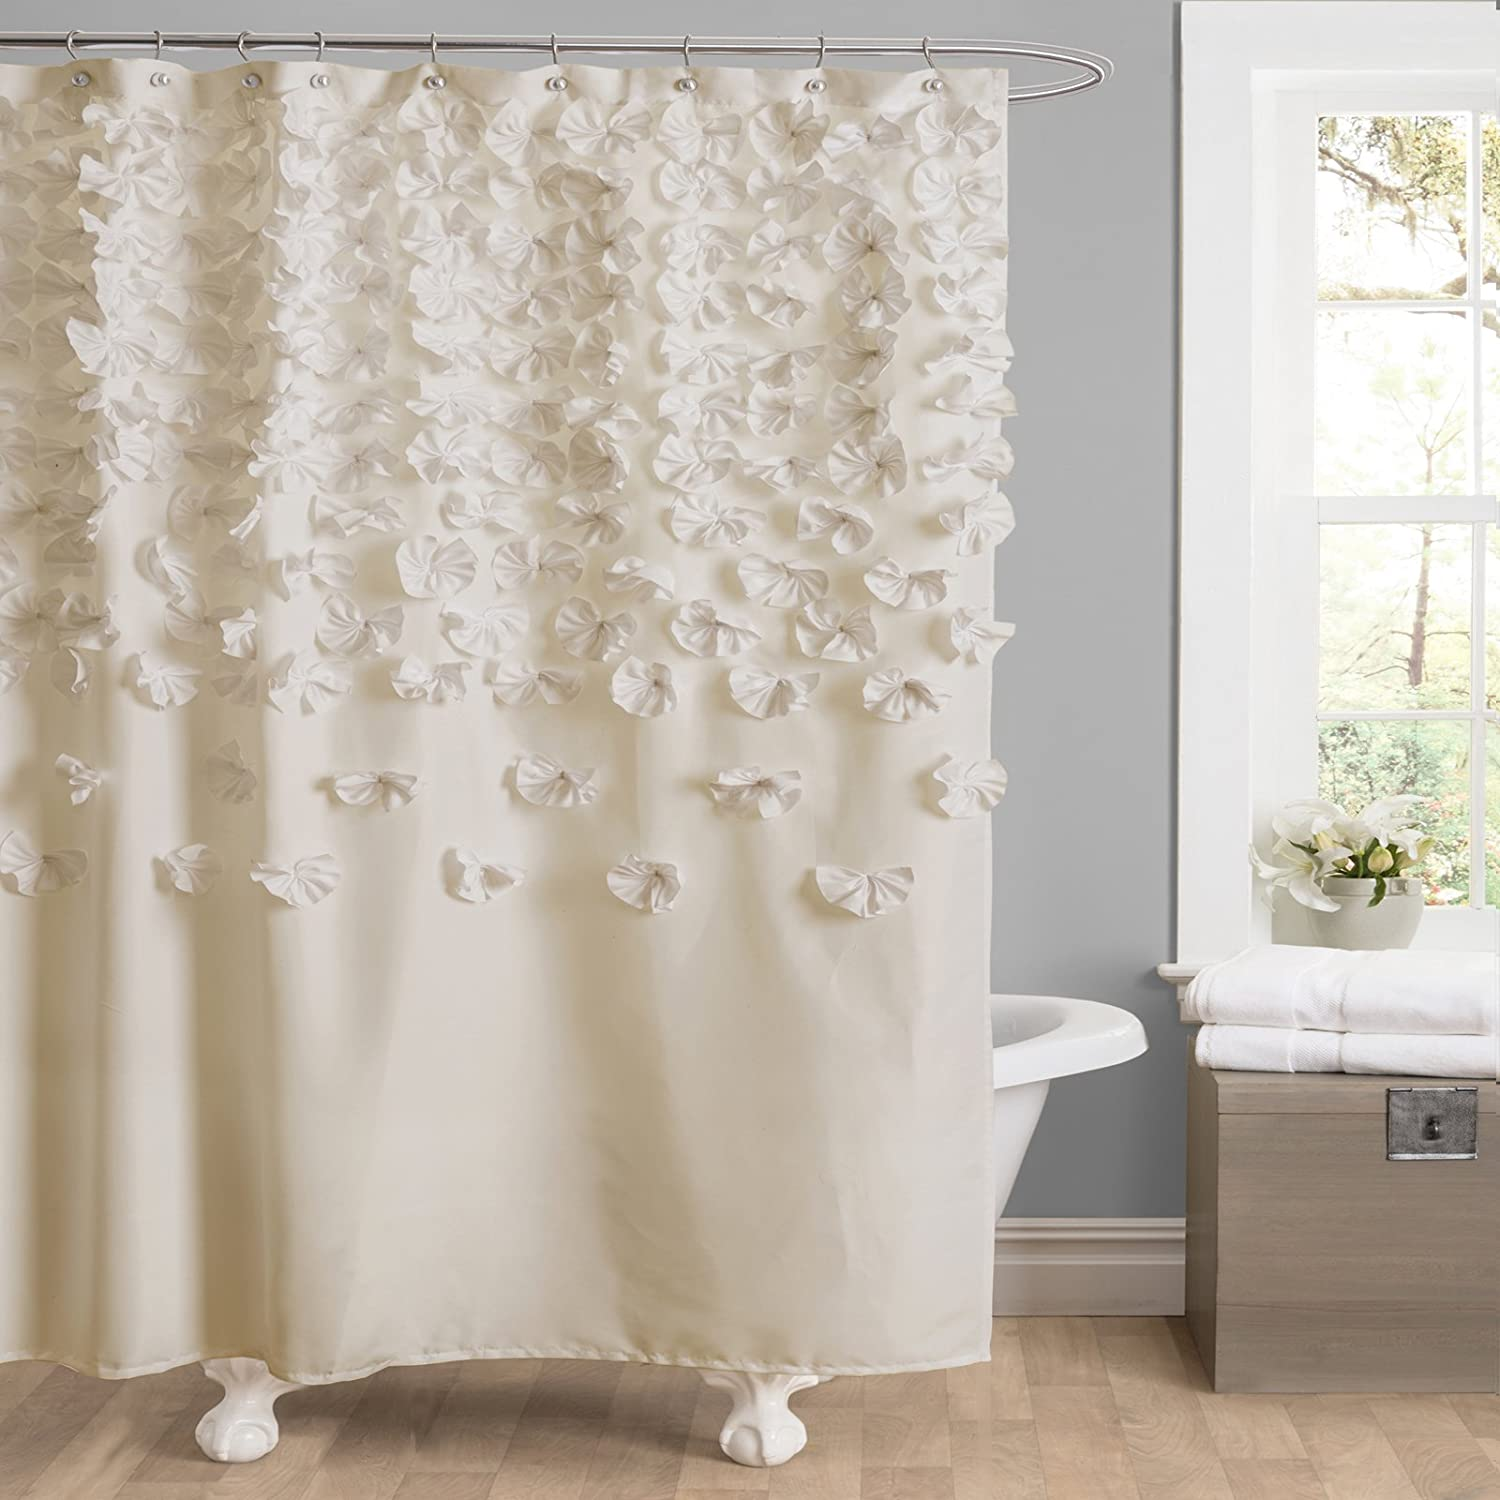 Amazon Lush Decor Lucia Shower Curtain 72 Inch By Ivory Home Kitchen